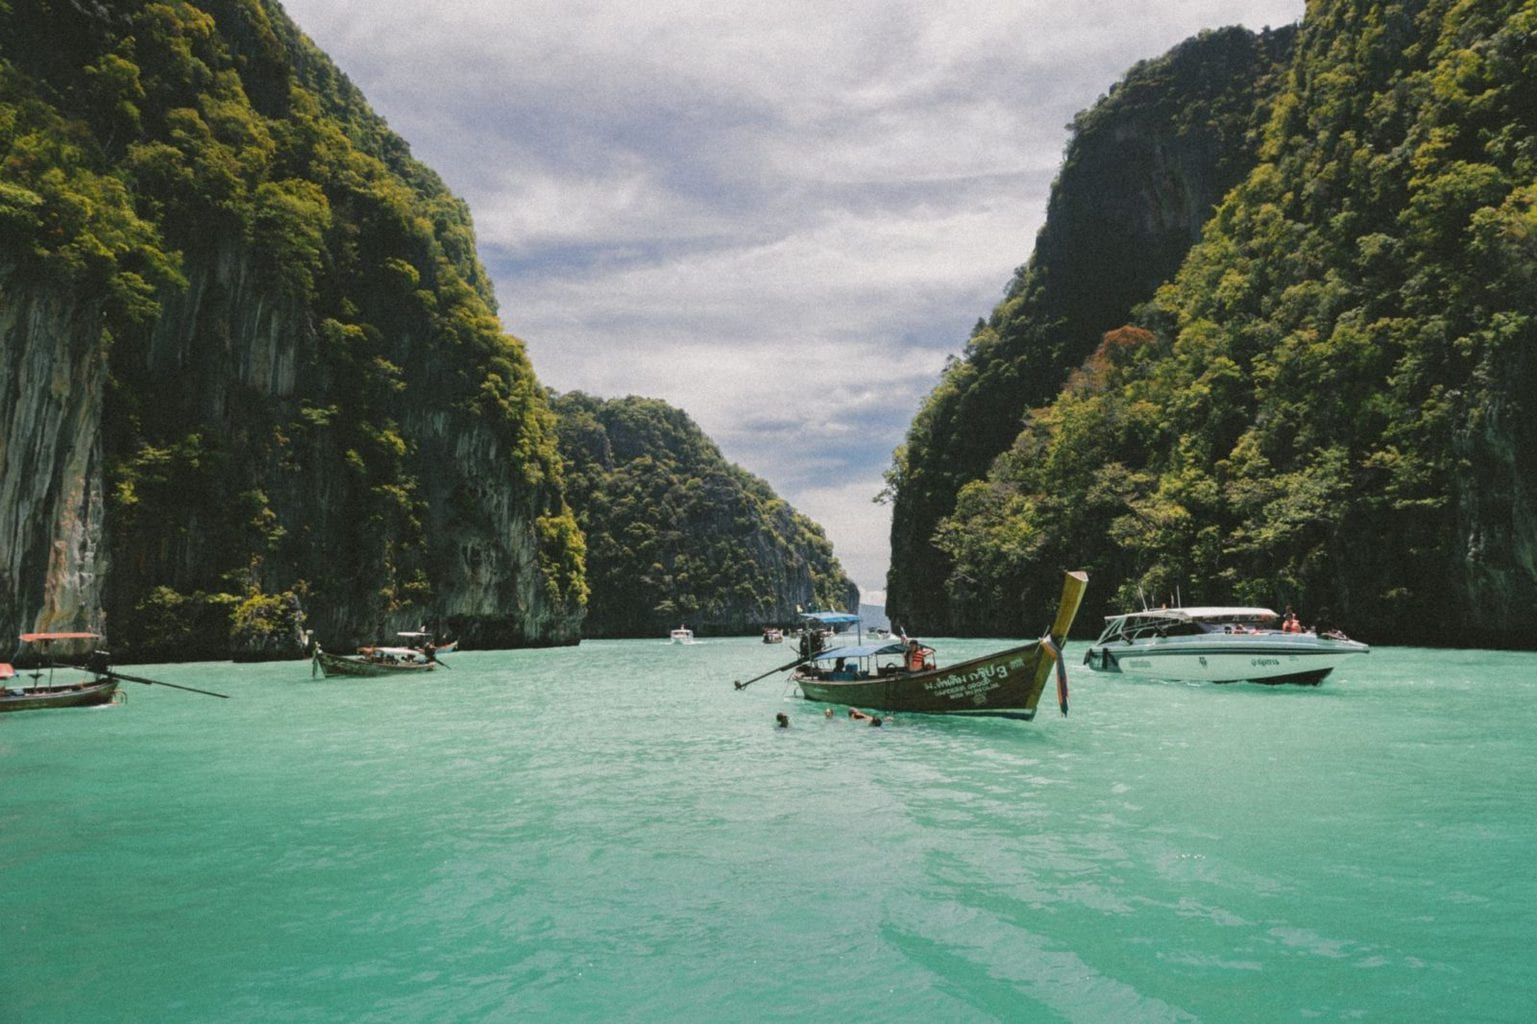 Picture of boats on the water in Phi Phi Islands, Thailand